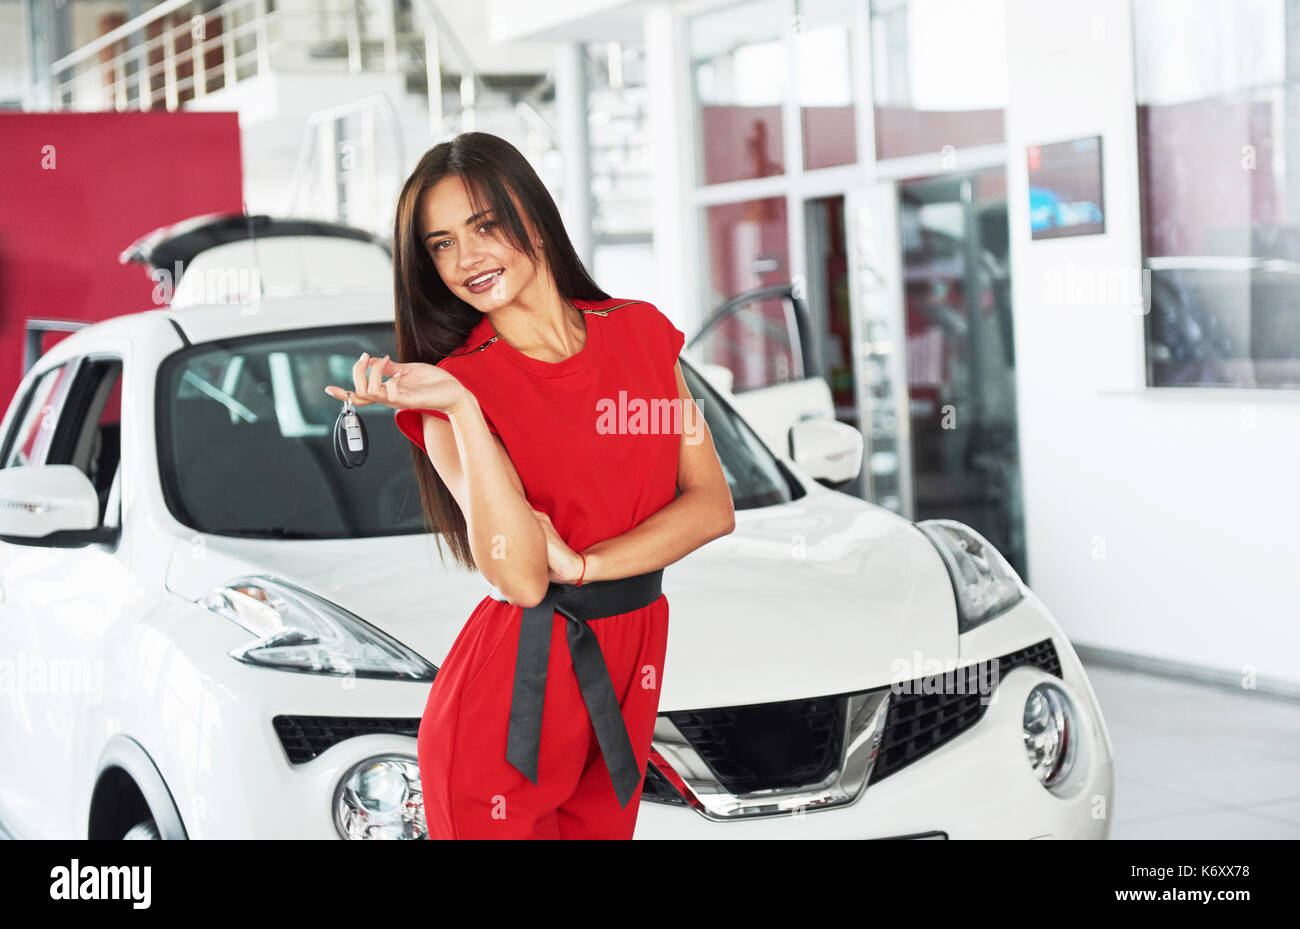 Smiling car salesman handing over your new car keys, dealership and sales concept. Happy girl the buyer. - Stock Image